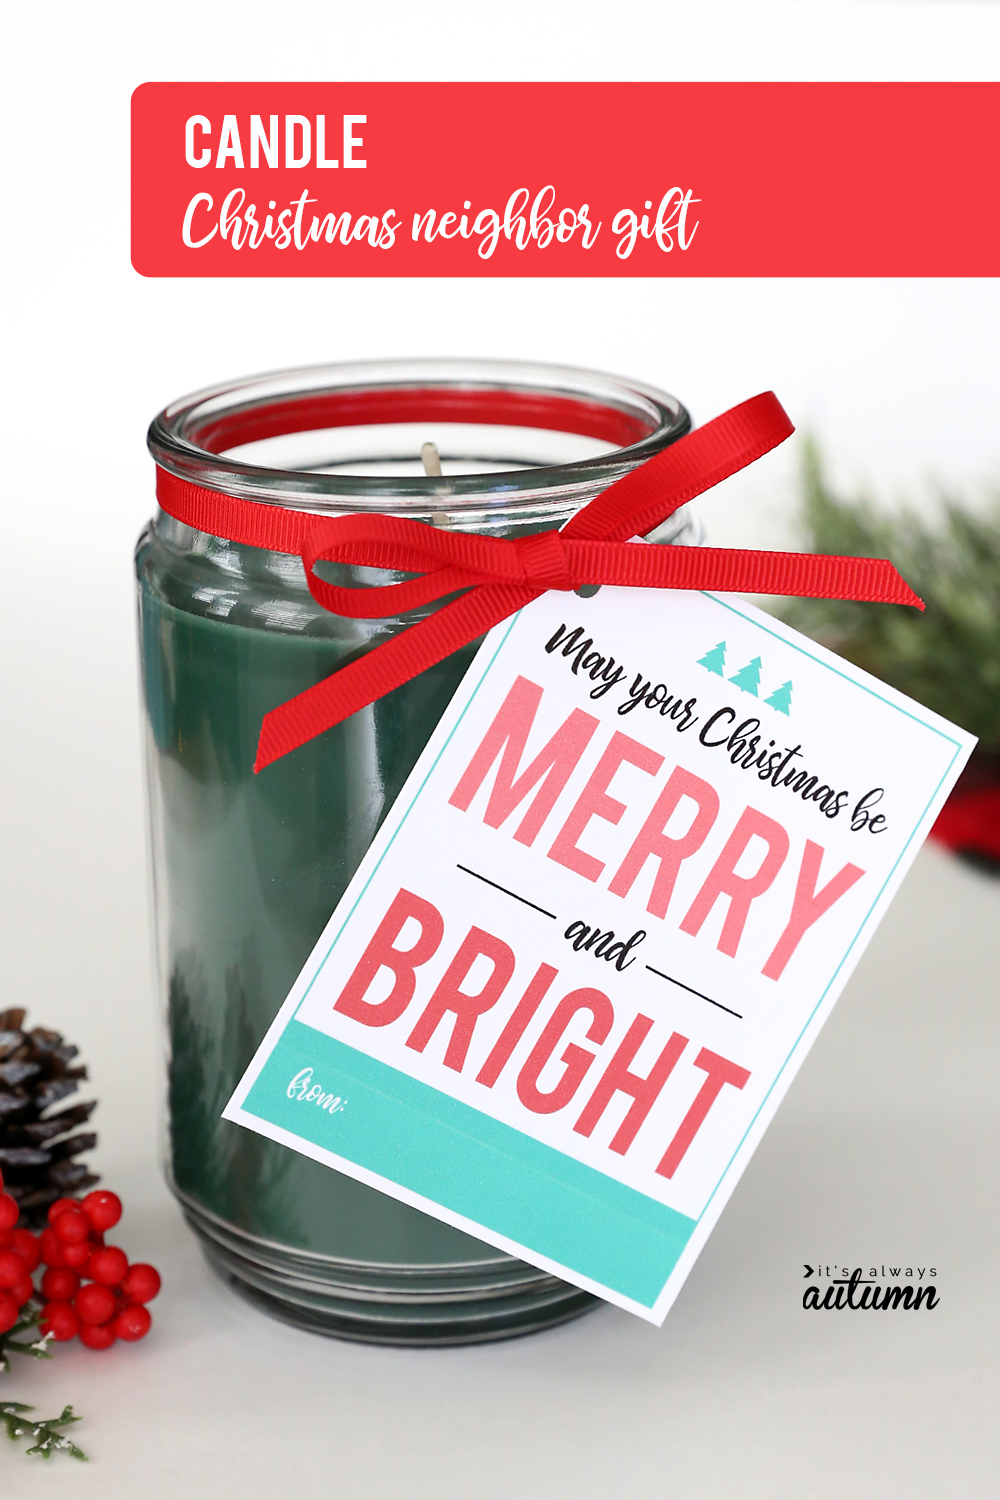 17 easy Christmas neighbor gift ideas with printable tags! Candle neighbor gift idea.